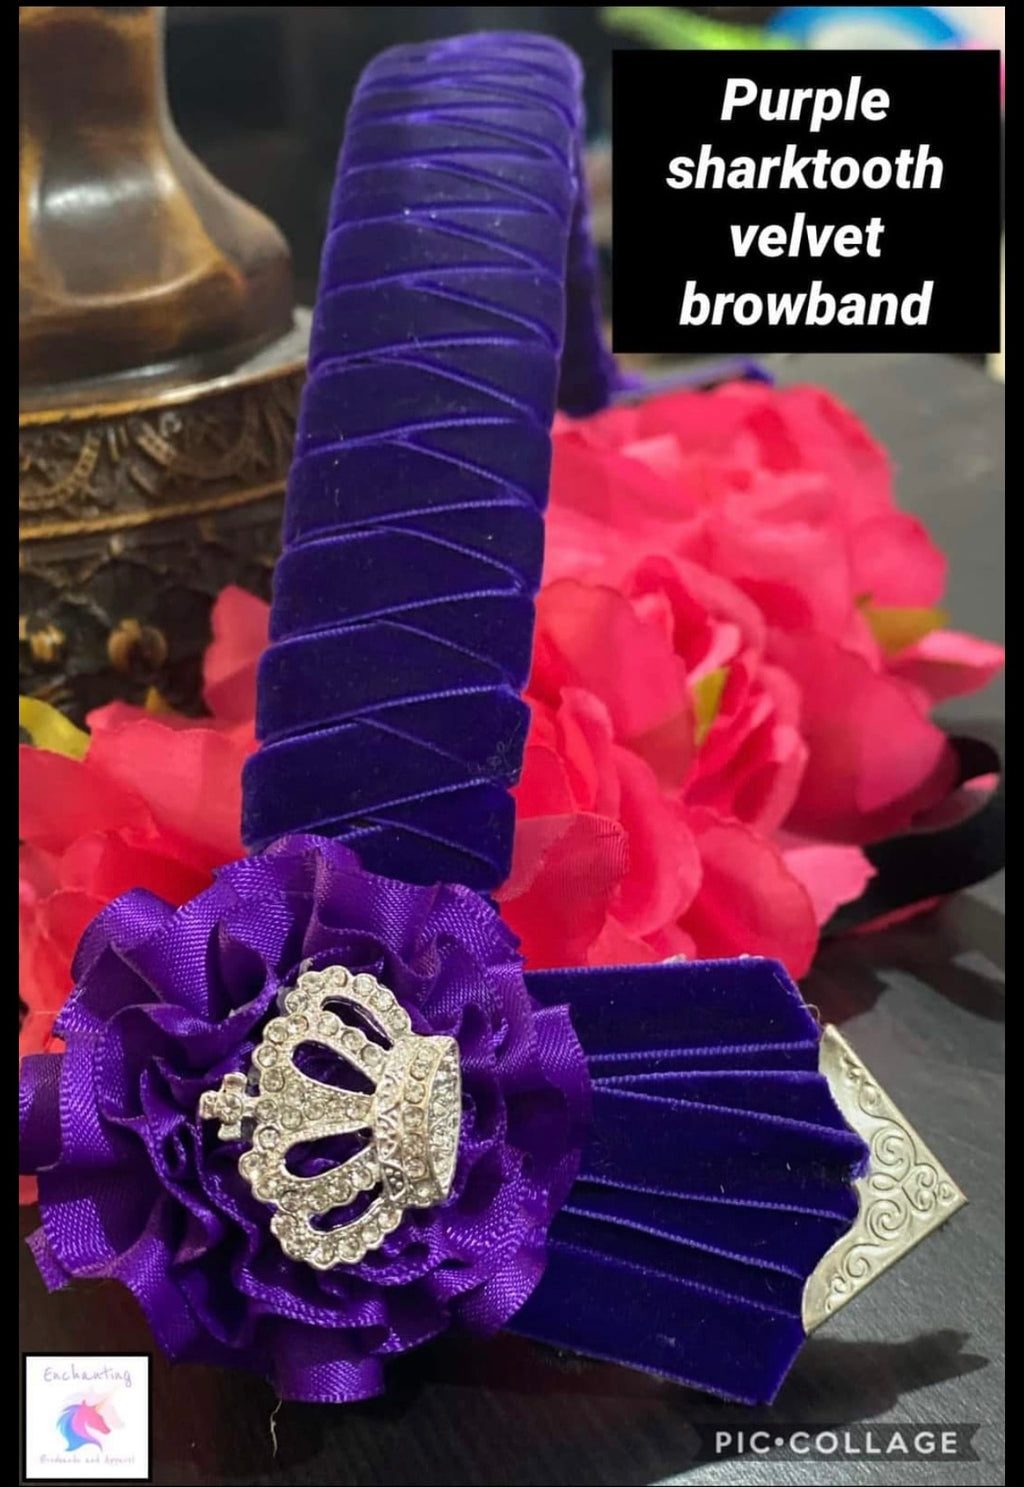 Purple velvet shark tooth style browband